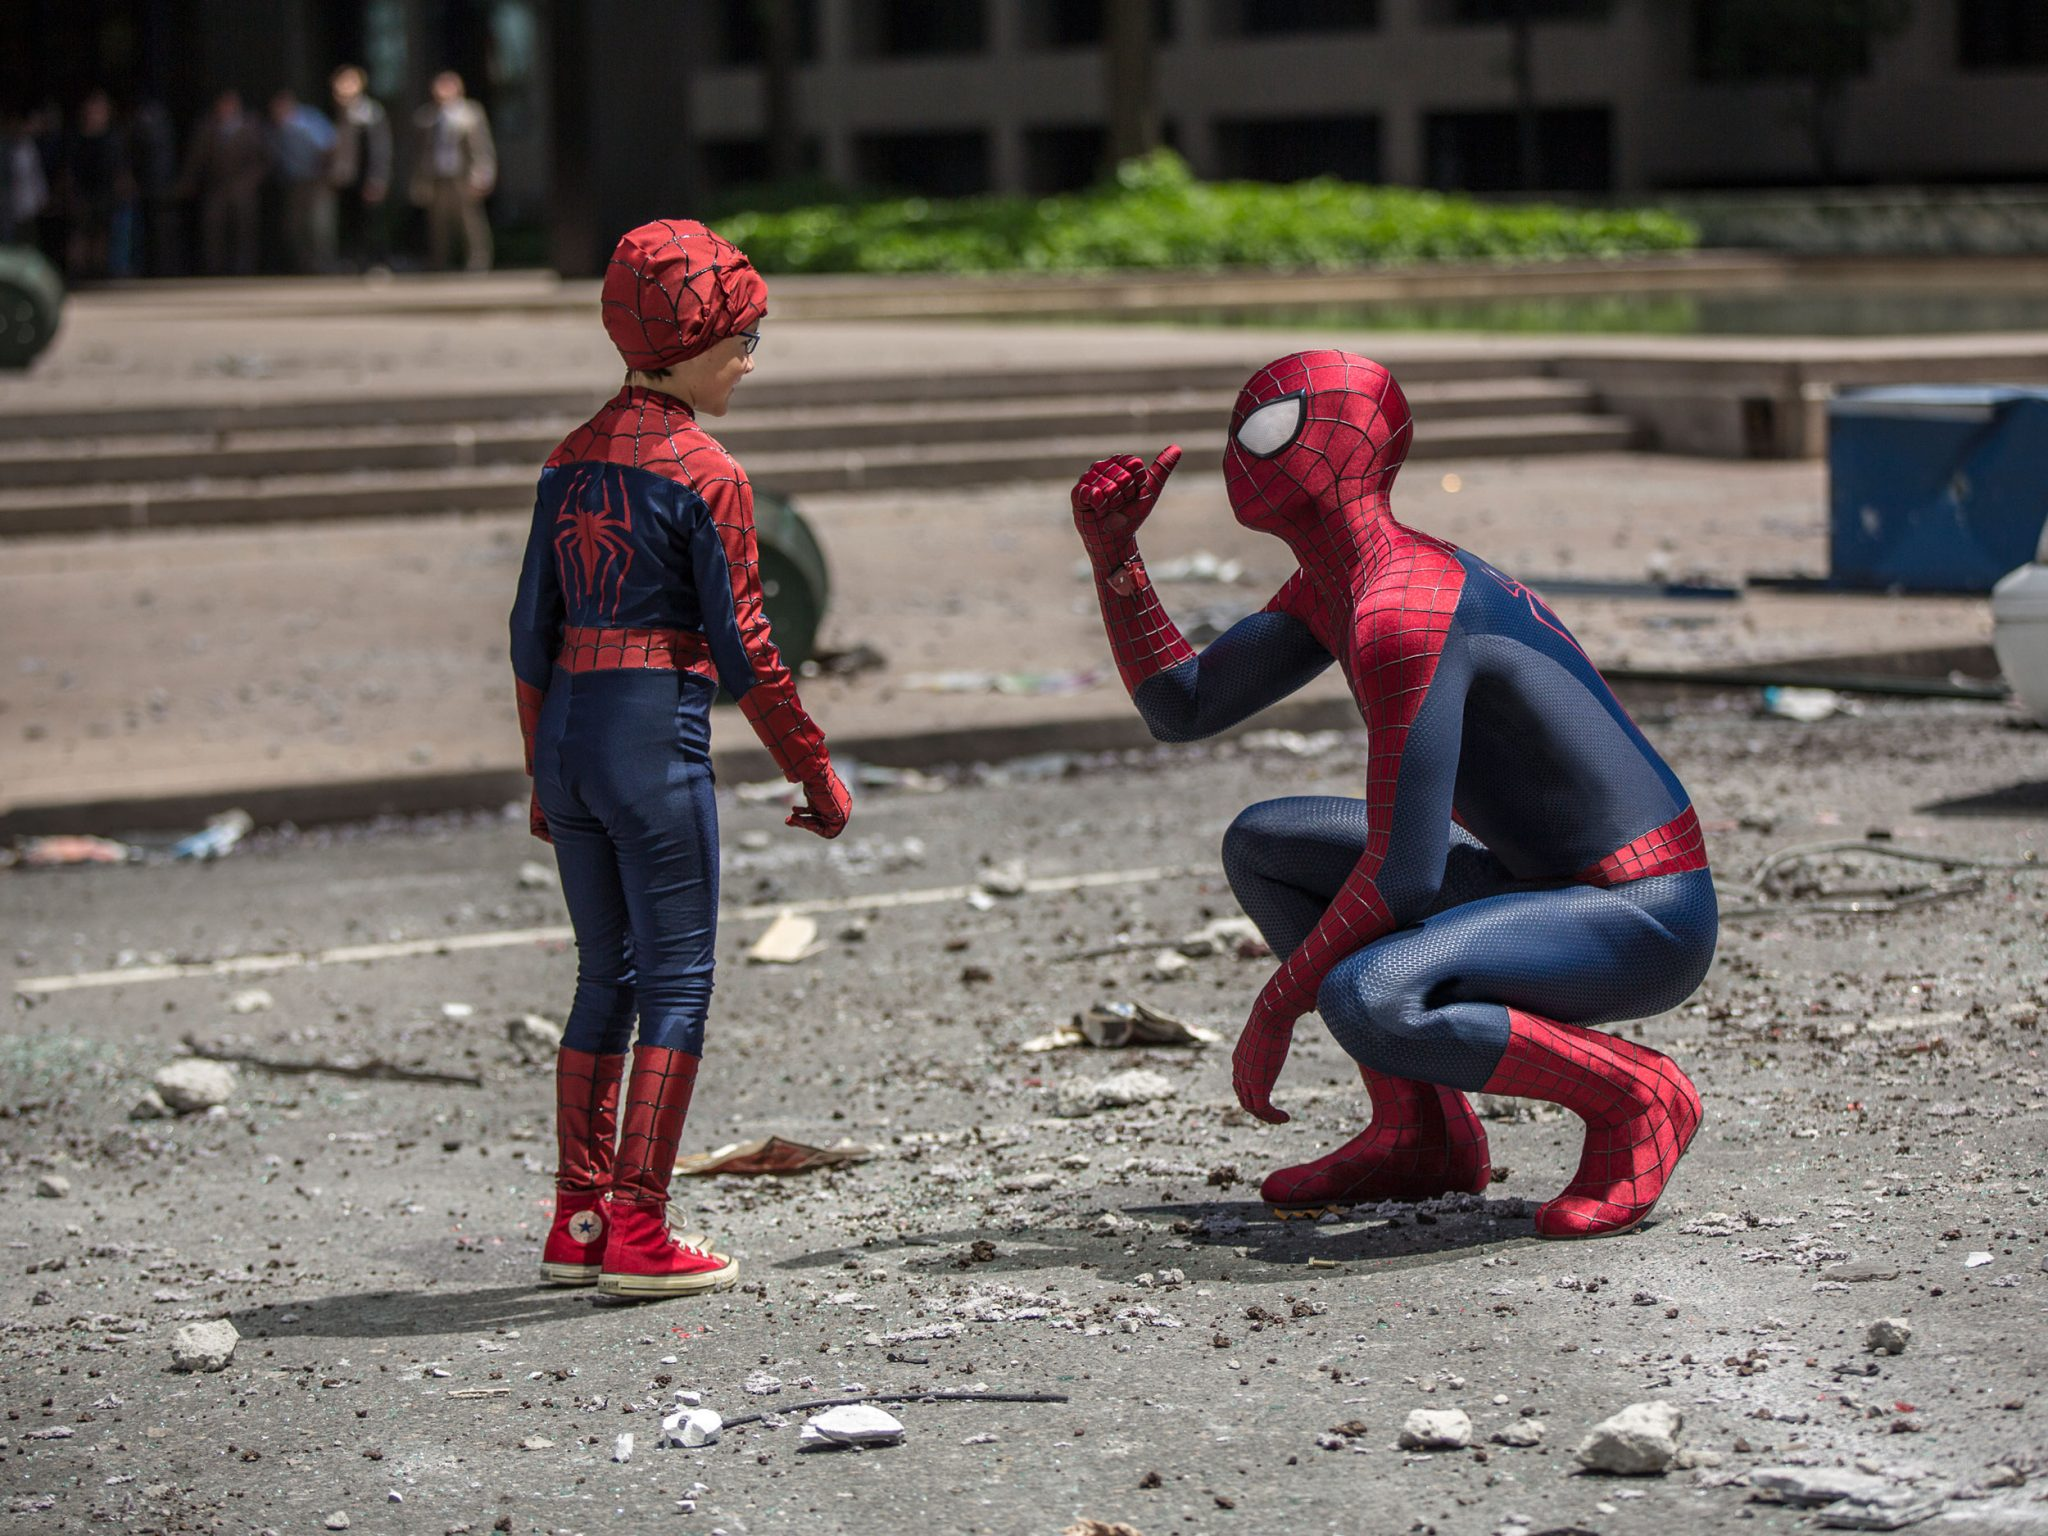 spider-man vs. amazing spider-man